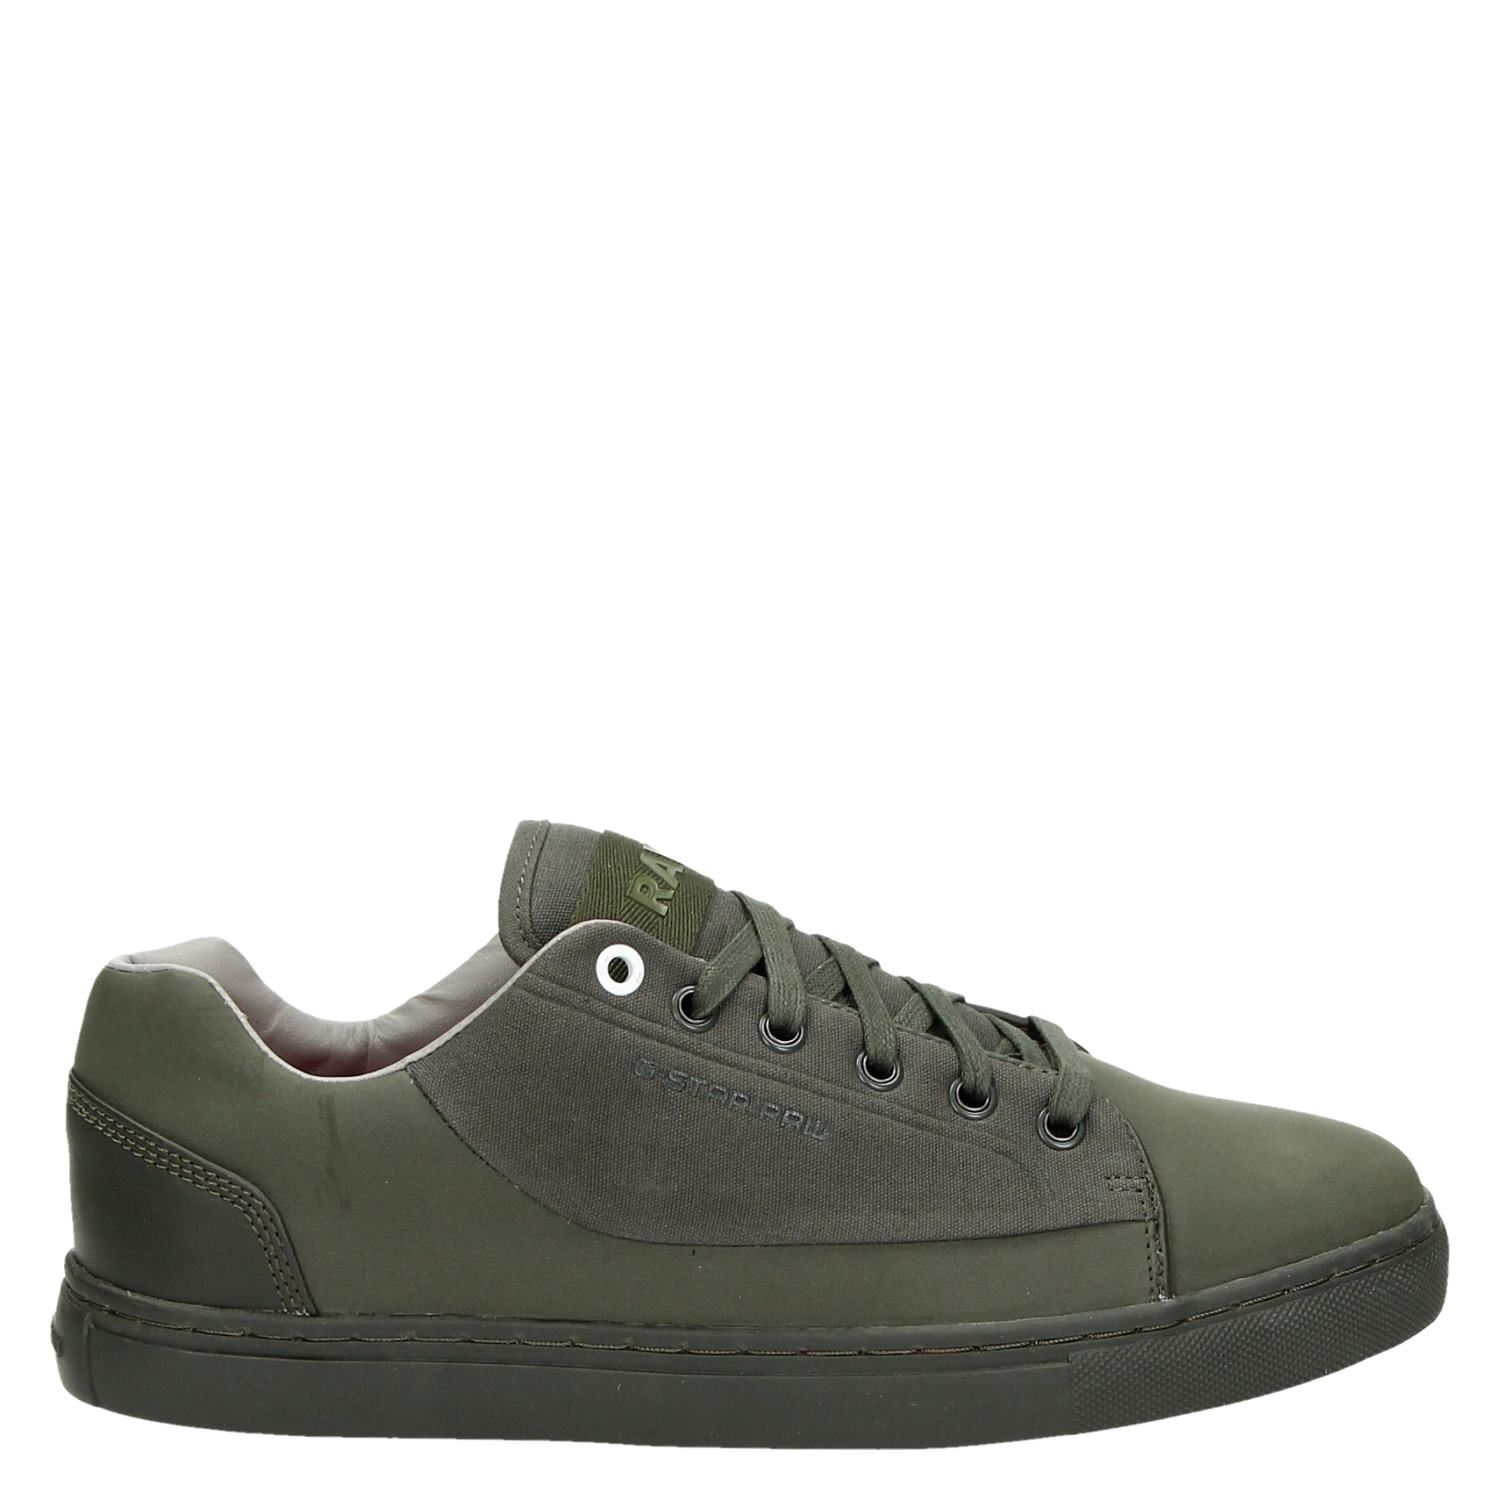 G-Star Raw heren lage sneakers